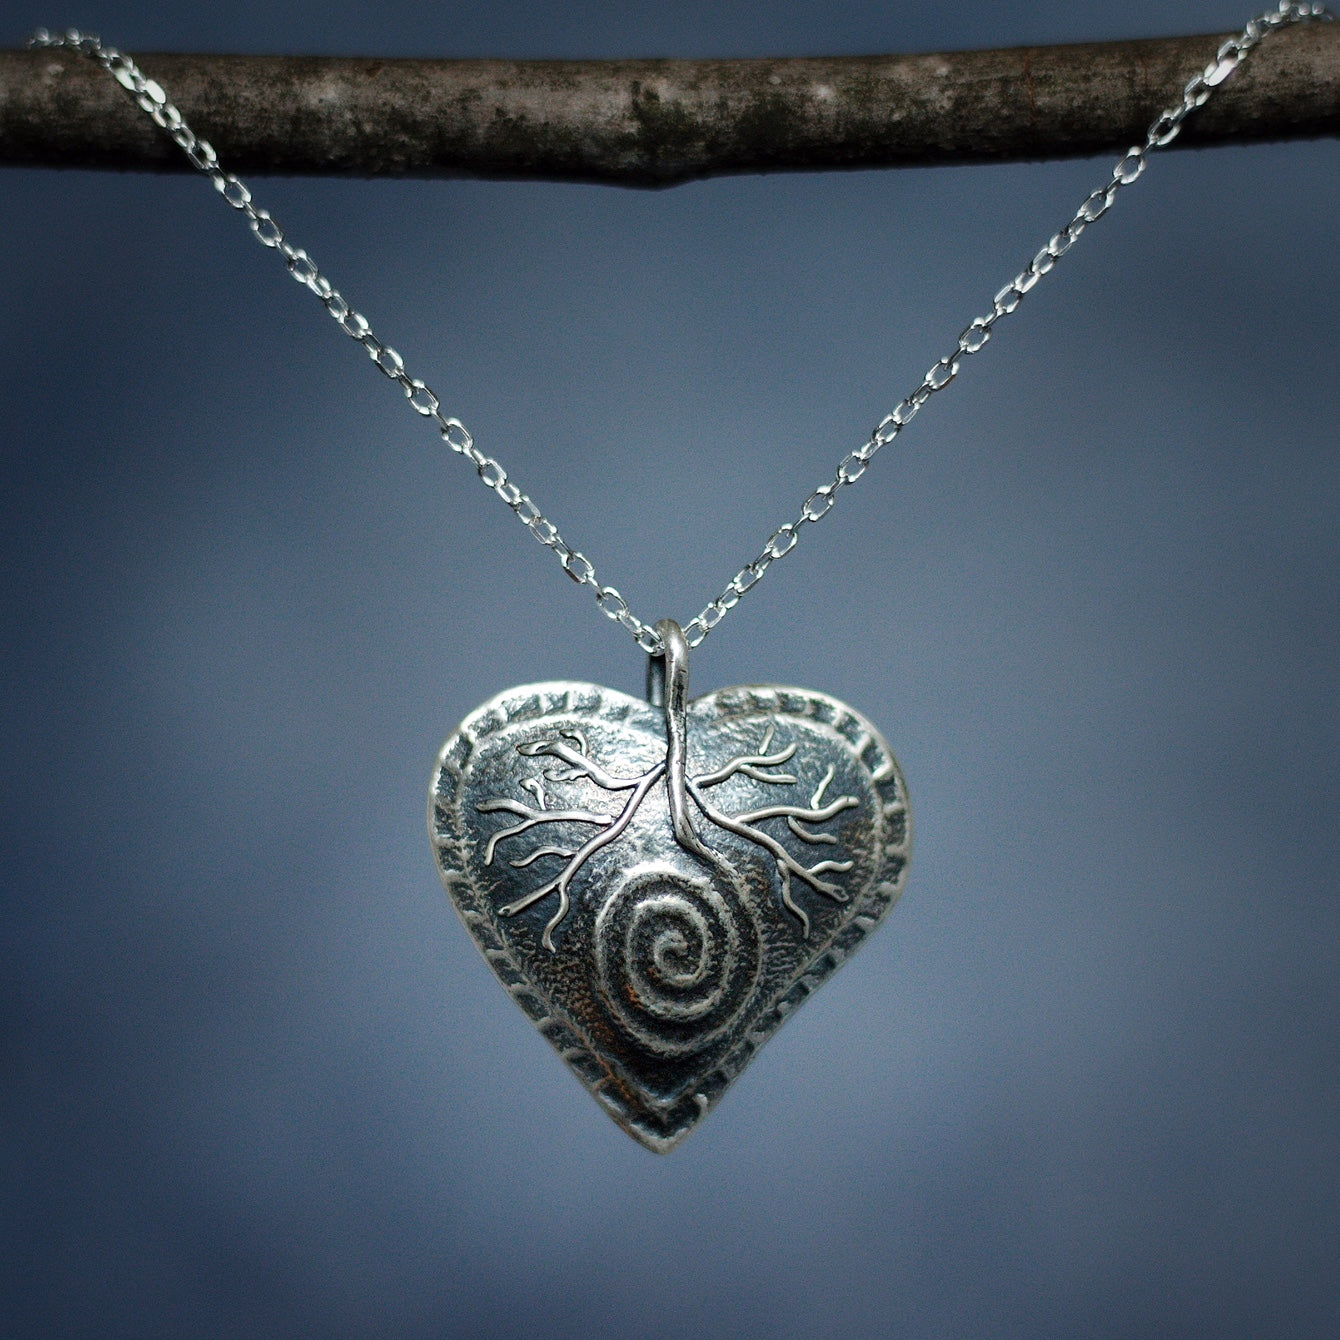 Whole Heart Pendant